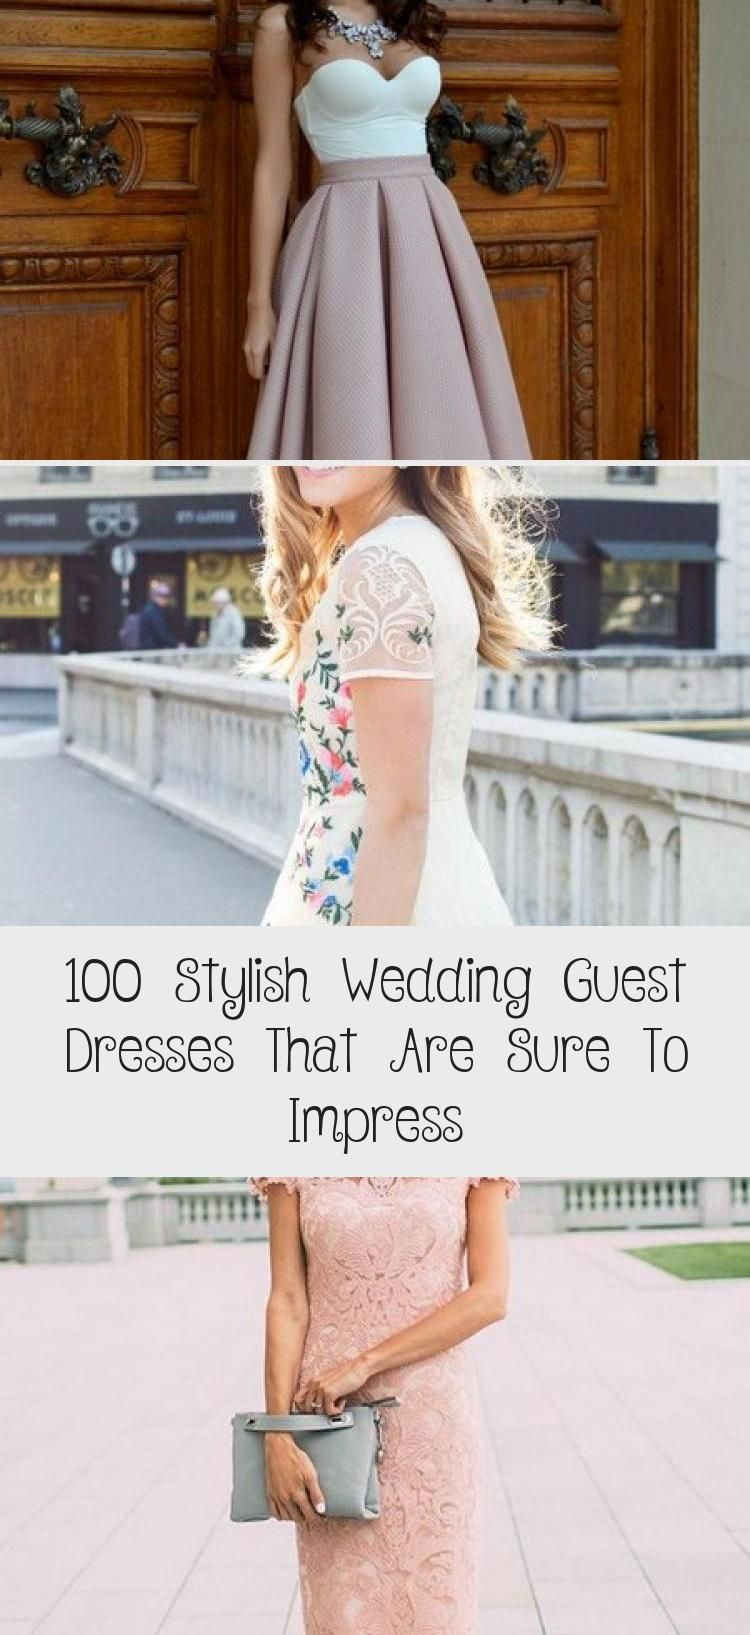 100 Stylish Wedding Guest Dresses That Are Sure To Impress Clothing Dress Guest Dresses Wedding Guest Dress Italian Wedding Dresses [ 1635 x 750 Pixel ]